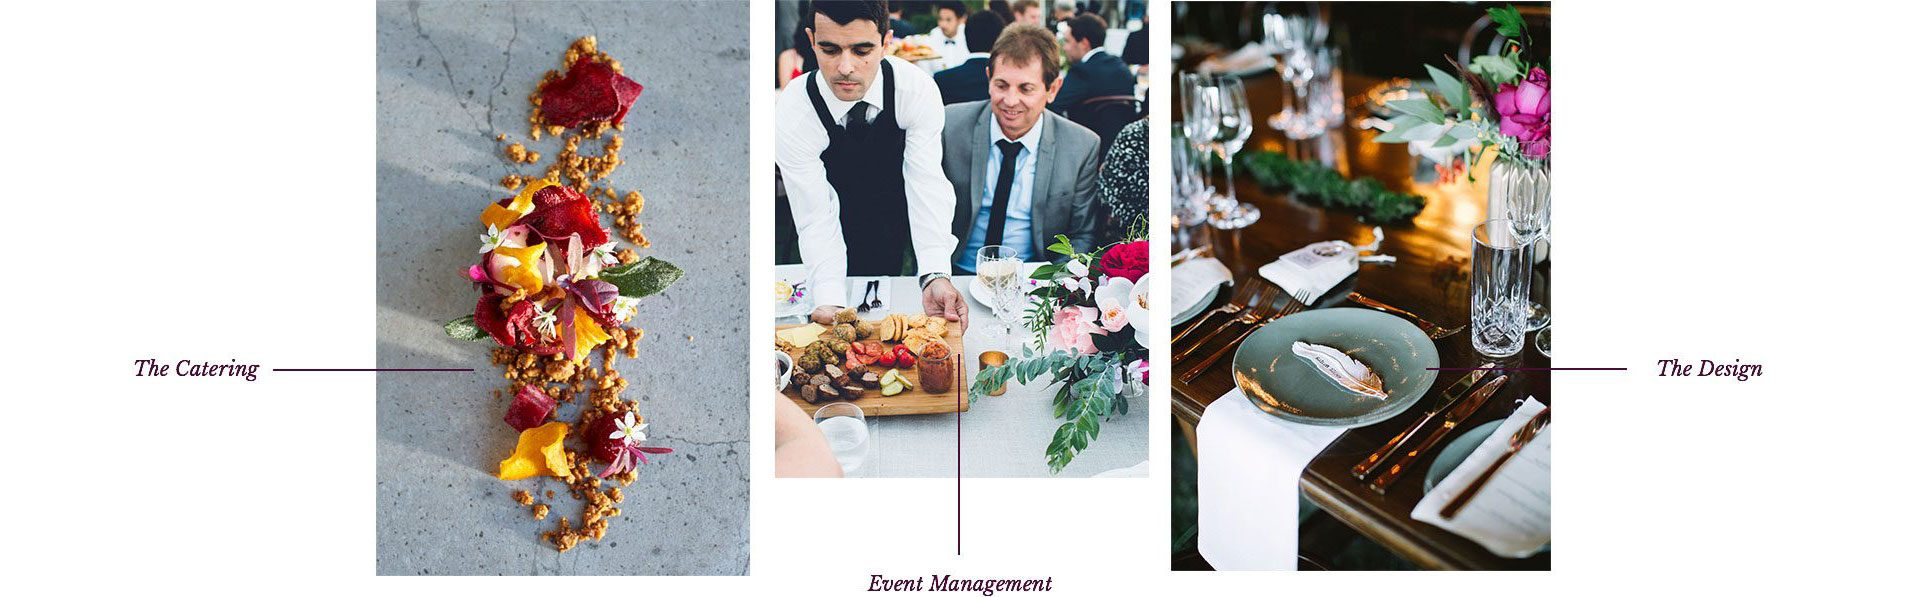 Event process from catering to the design.